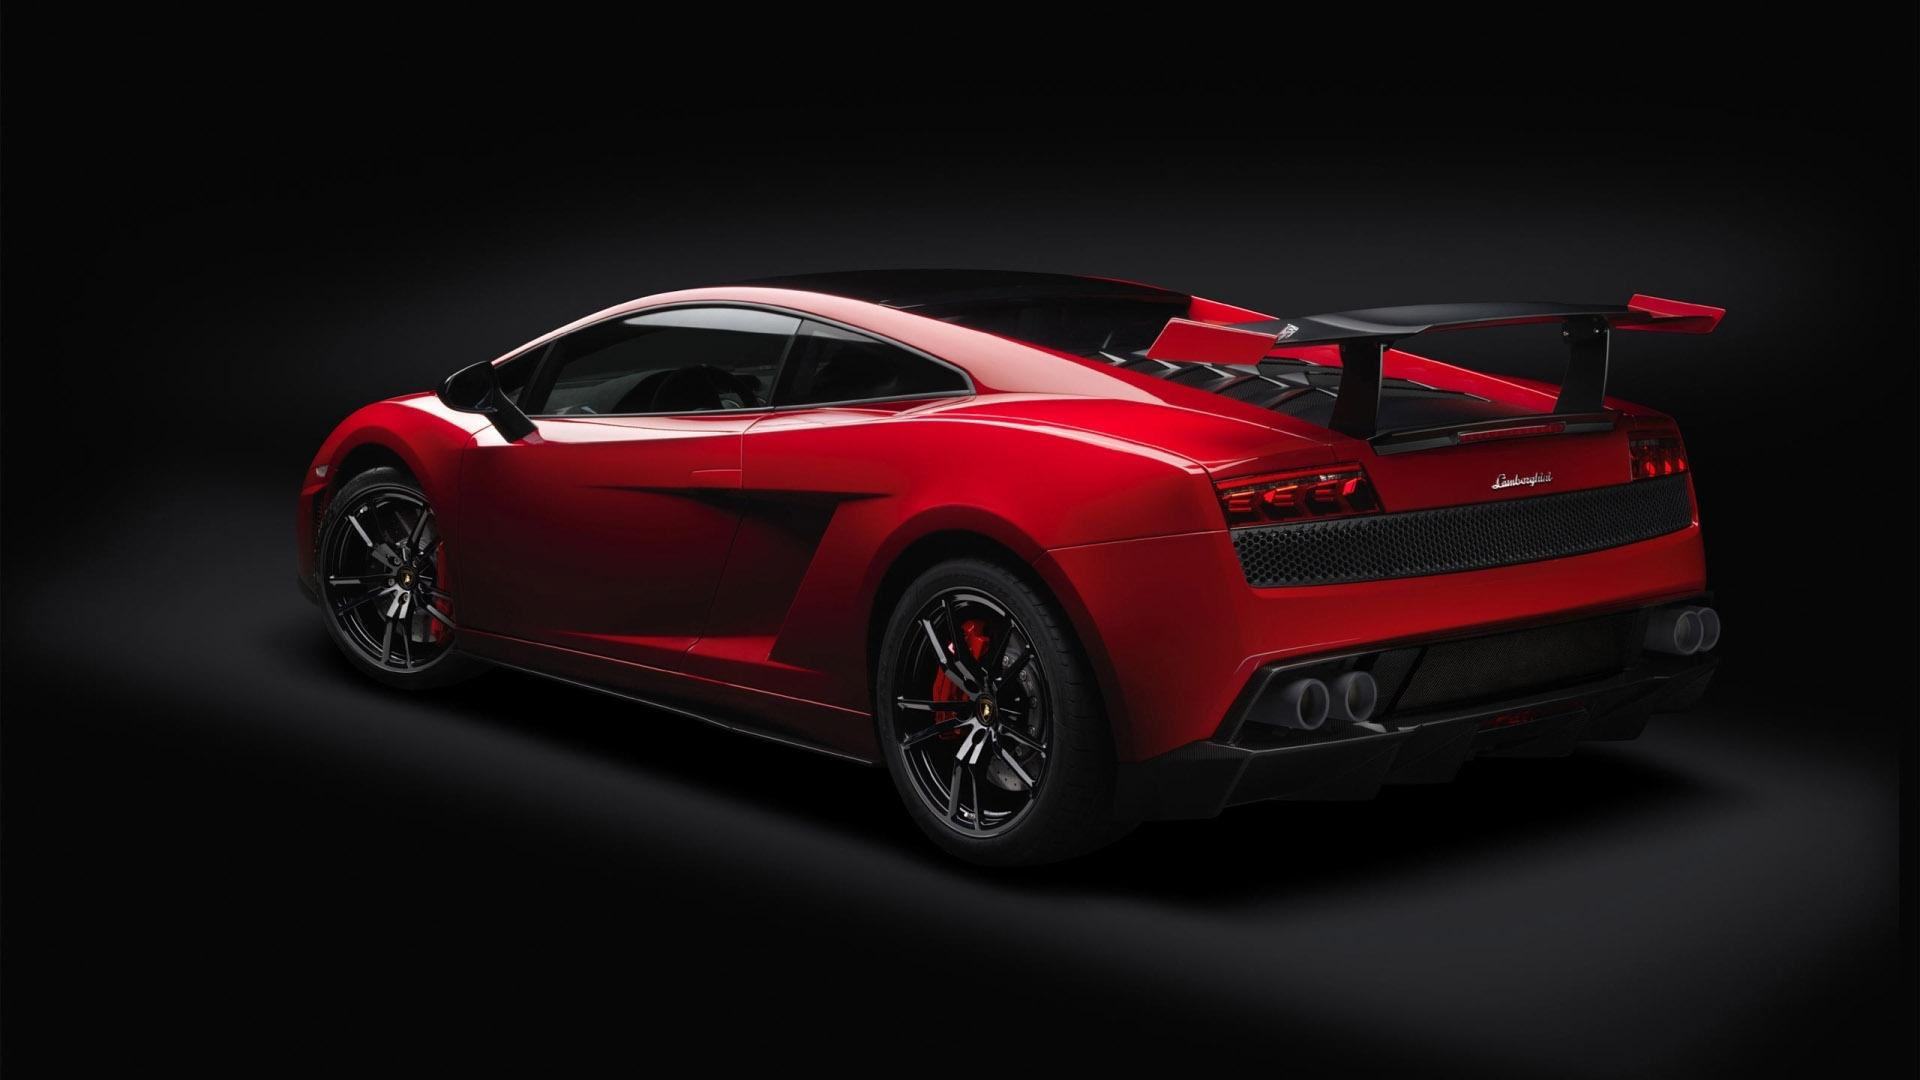 Cool Red Sports Car Wallpaper  Other  Wallpaper Better